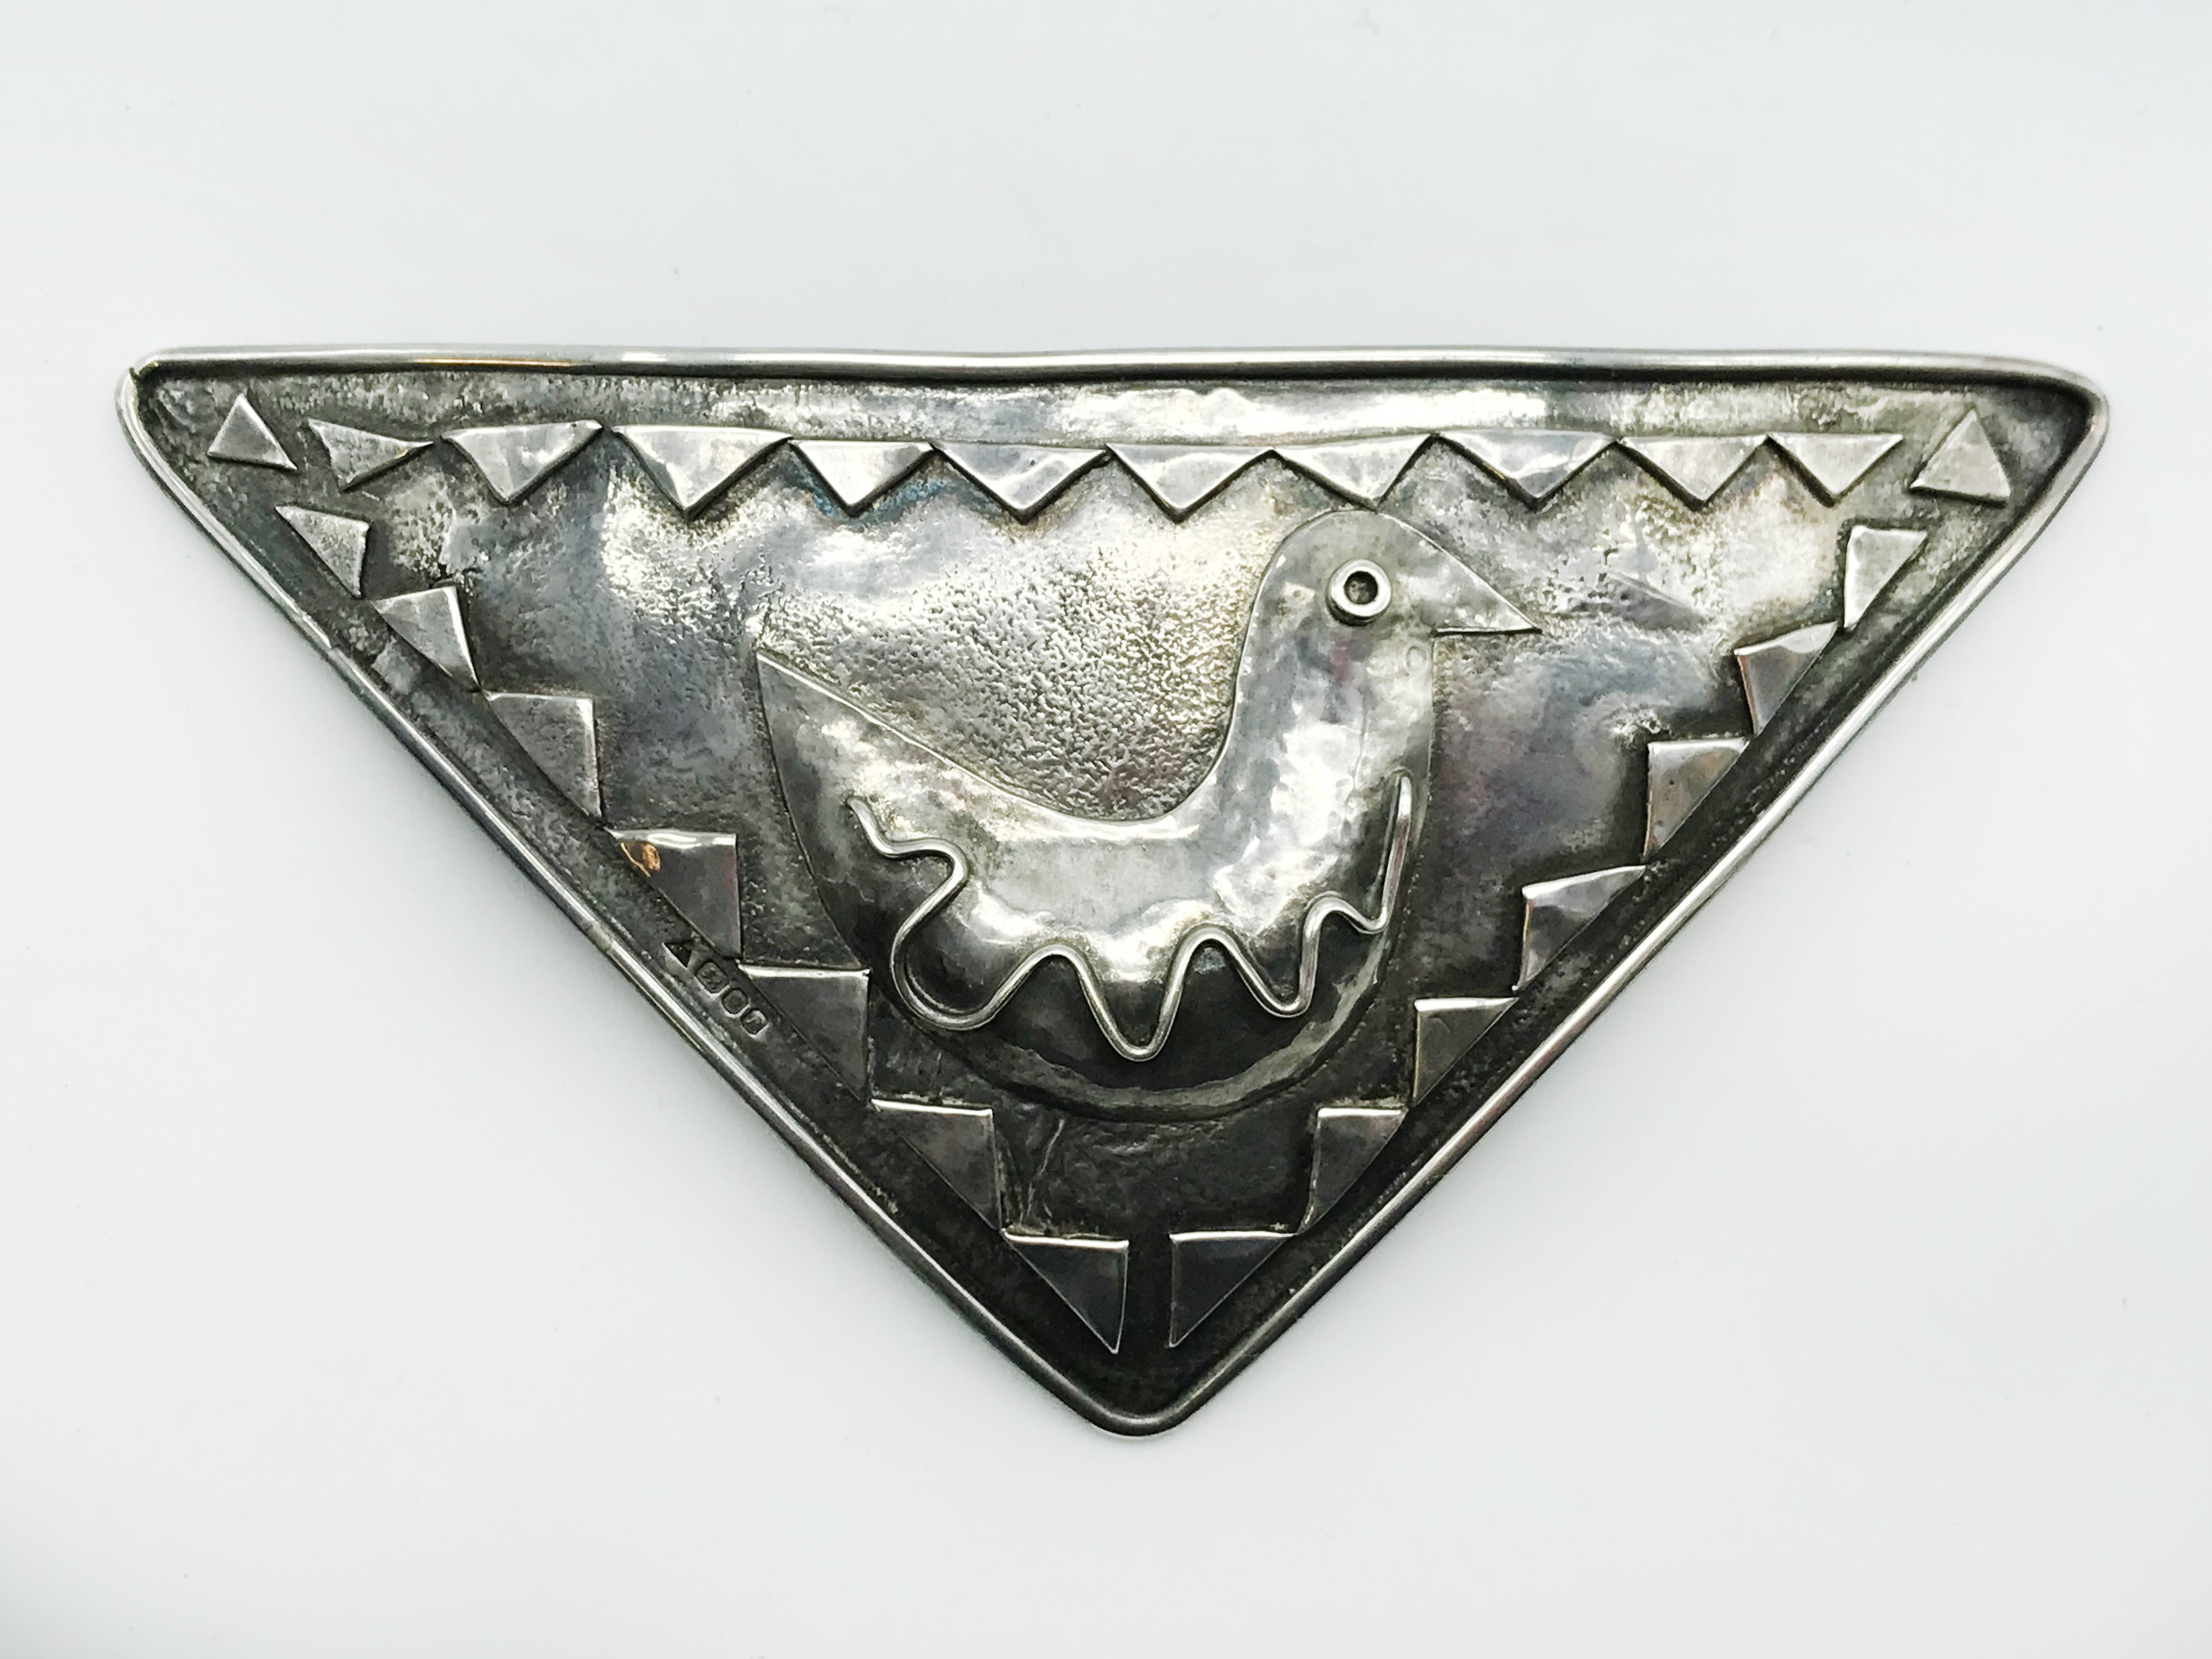 Lot 6 - UNUSUAL LARGE HALLMARKED SILVER BROOCH IN FORM OF TRIANGLE WITH A BIRD